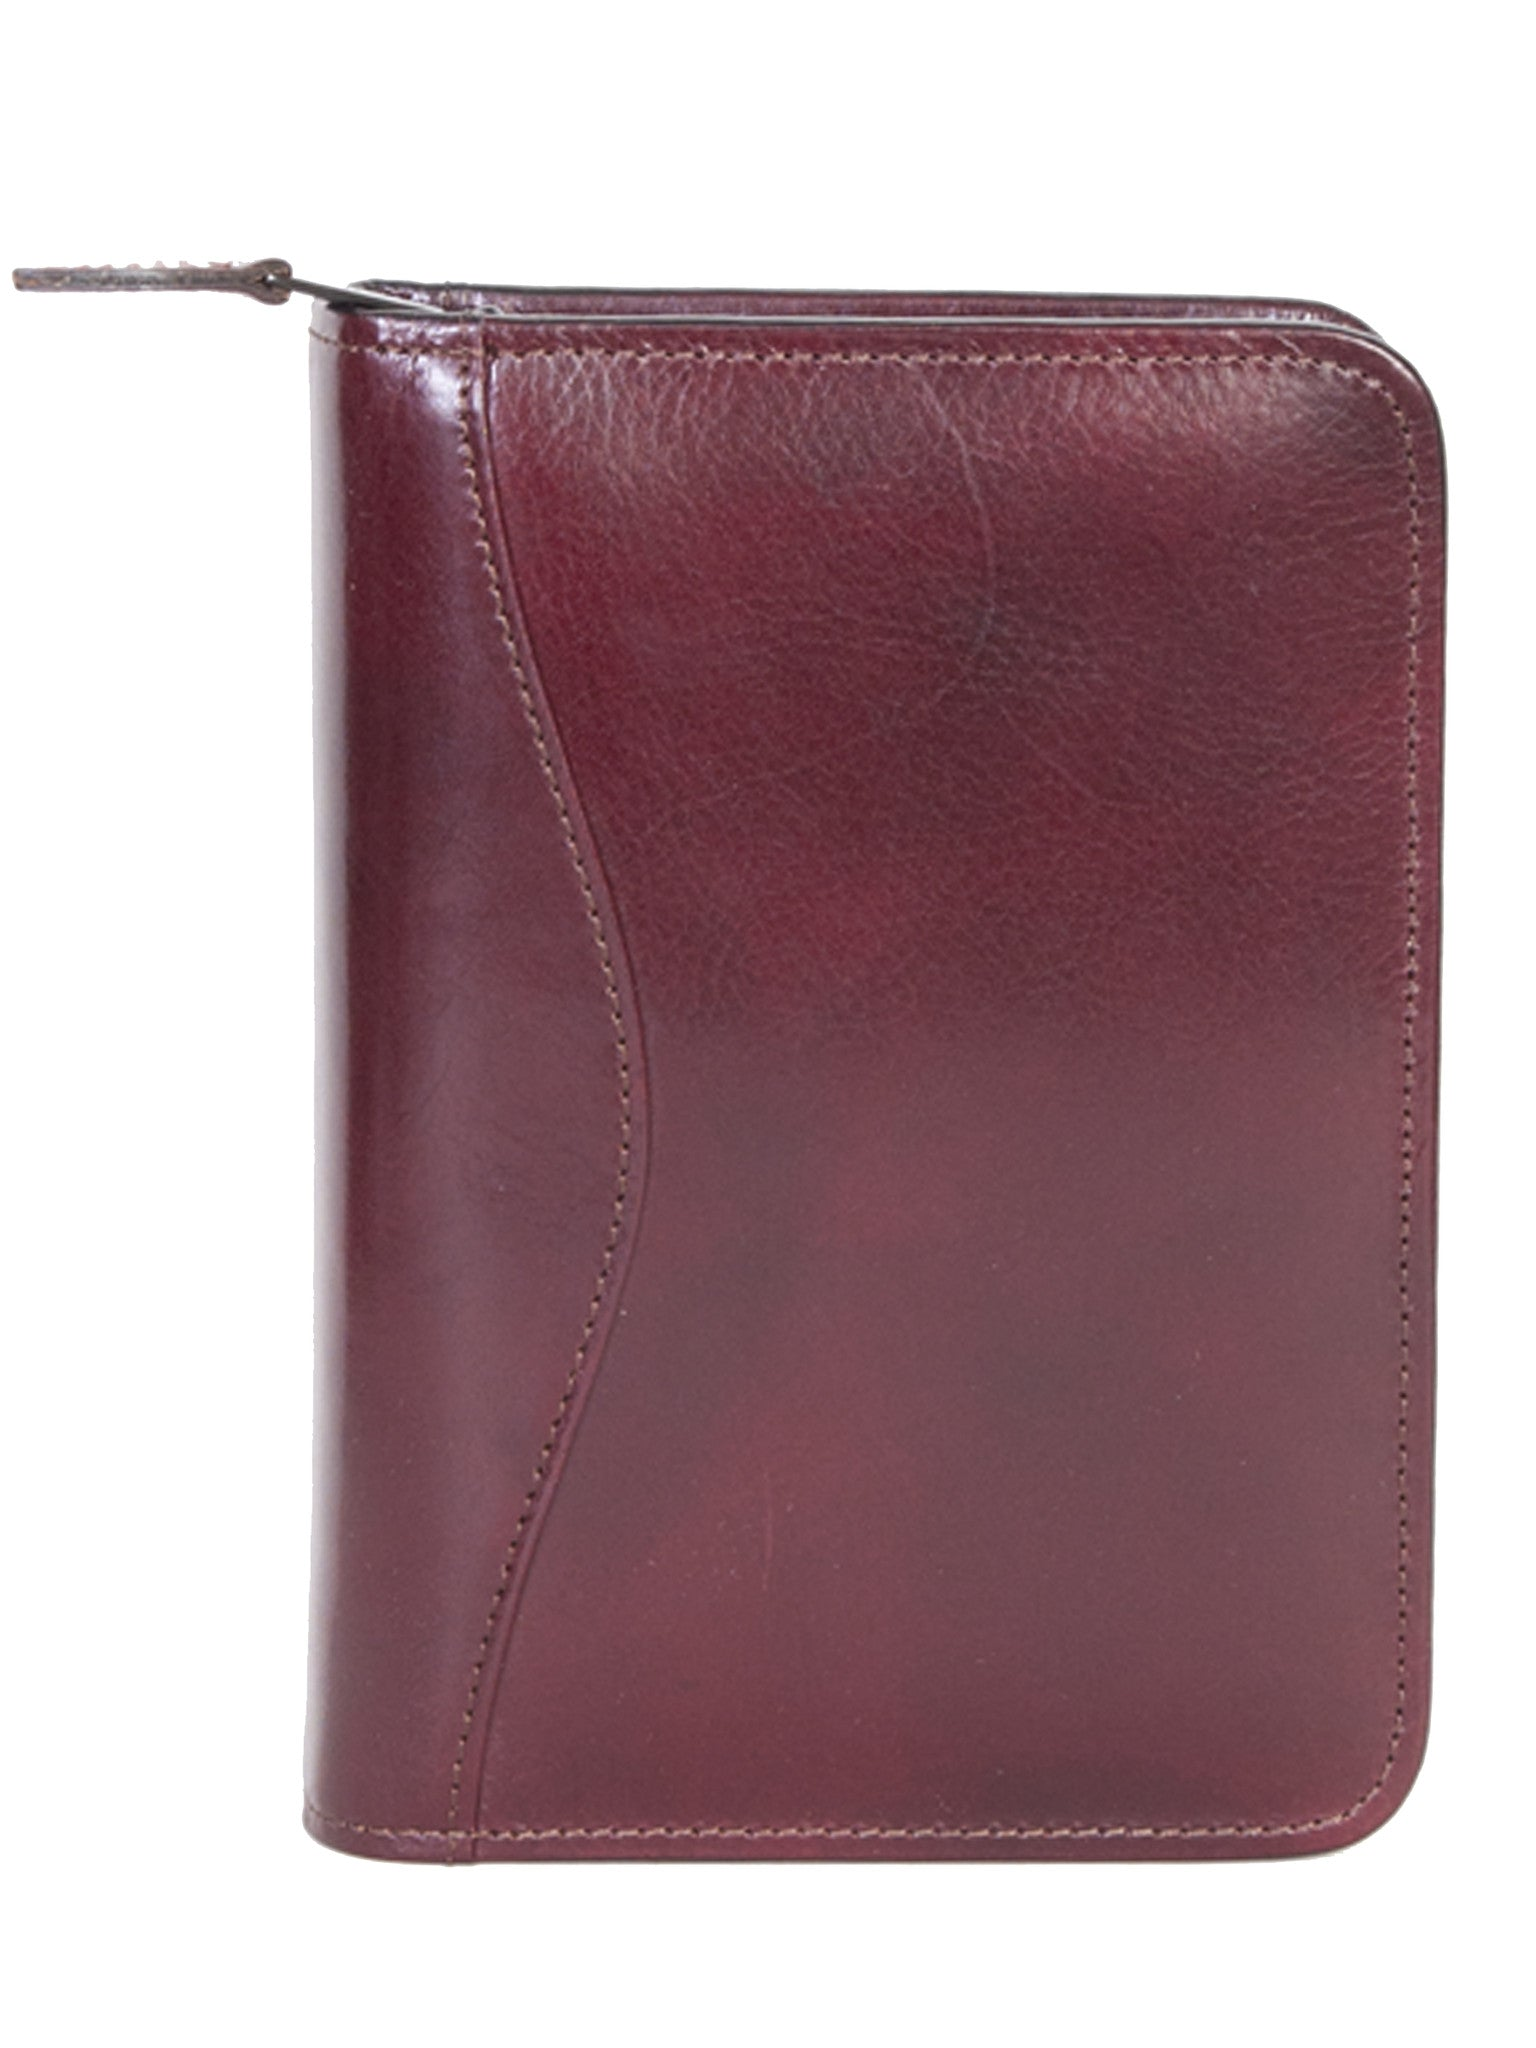 Scully italian leather telephone address book with business card scully leather phone address book burgundy reheart Image collections